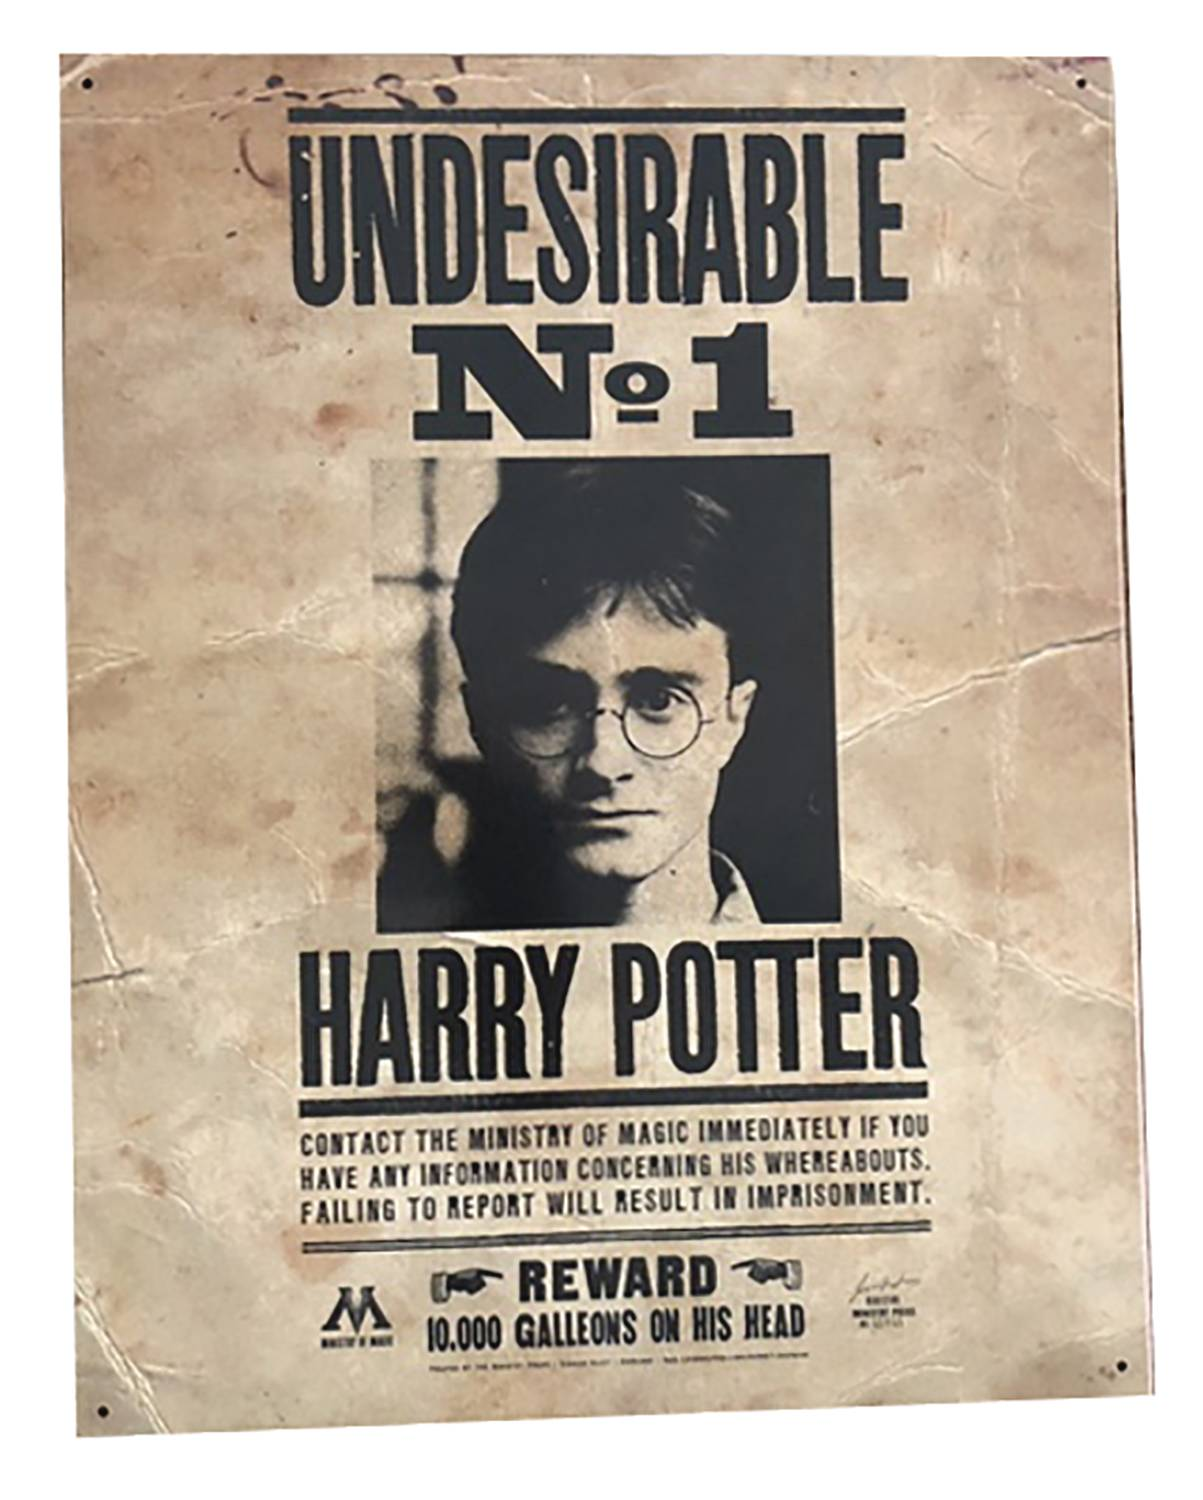 HARRY POTTER NUMBER ONE UNDESIRABLE 12X16 TIN SIGN